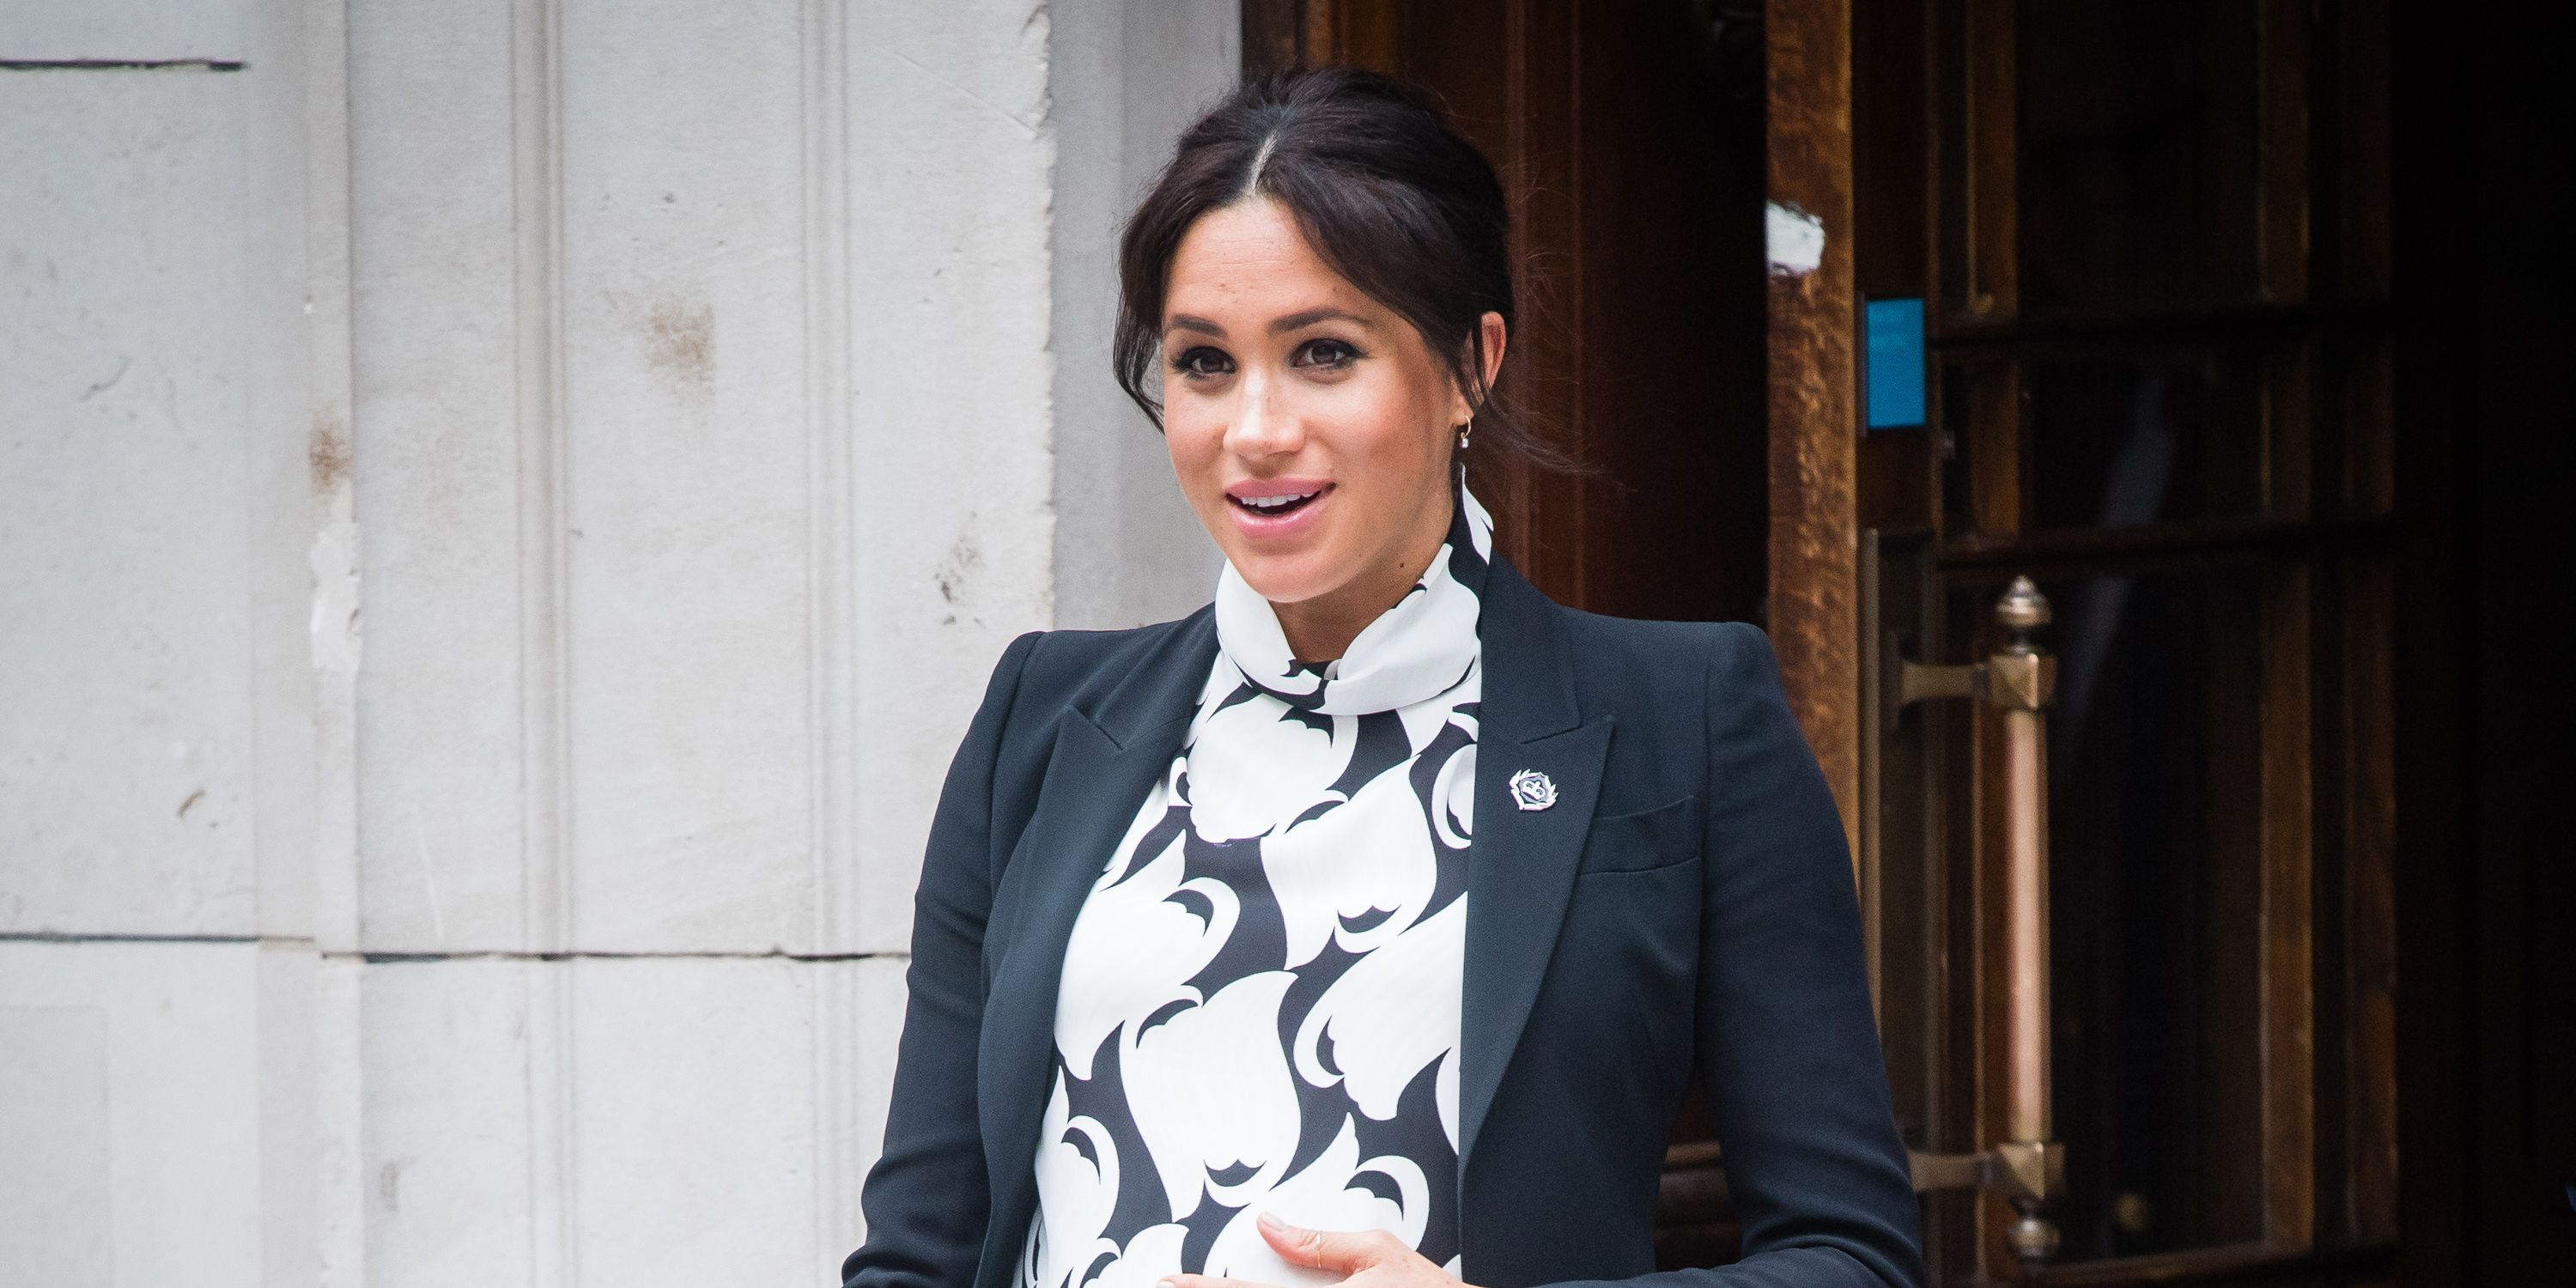 A midwife shares all the evidence that suggests Meghan is having twins